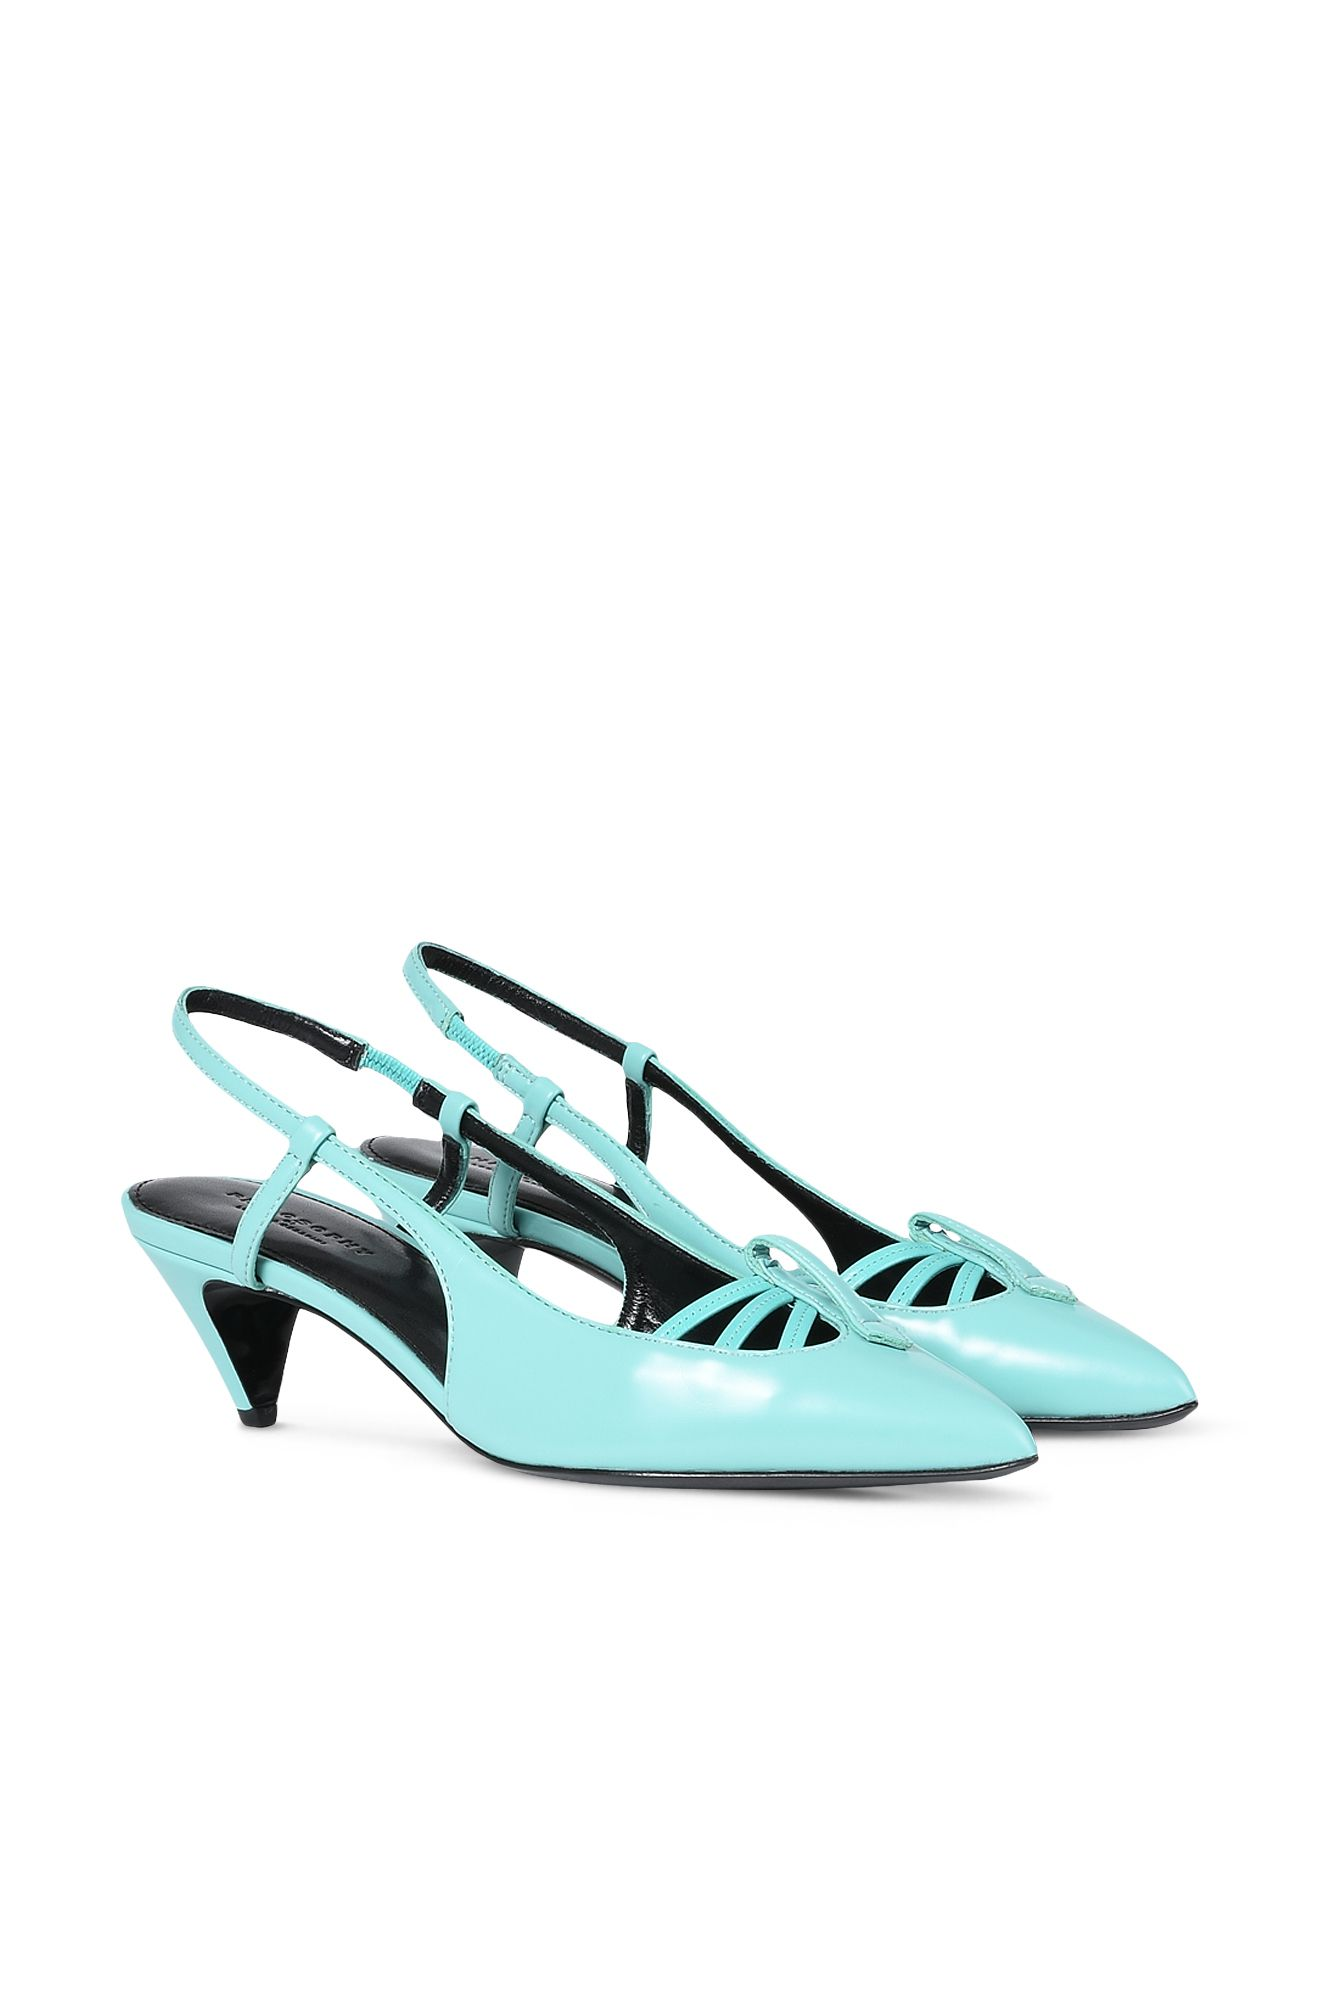 Coloured, vinyl-effect slingbacks